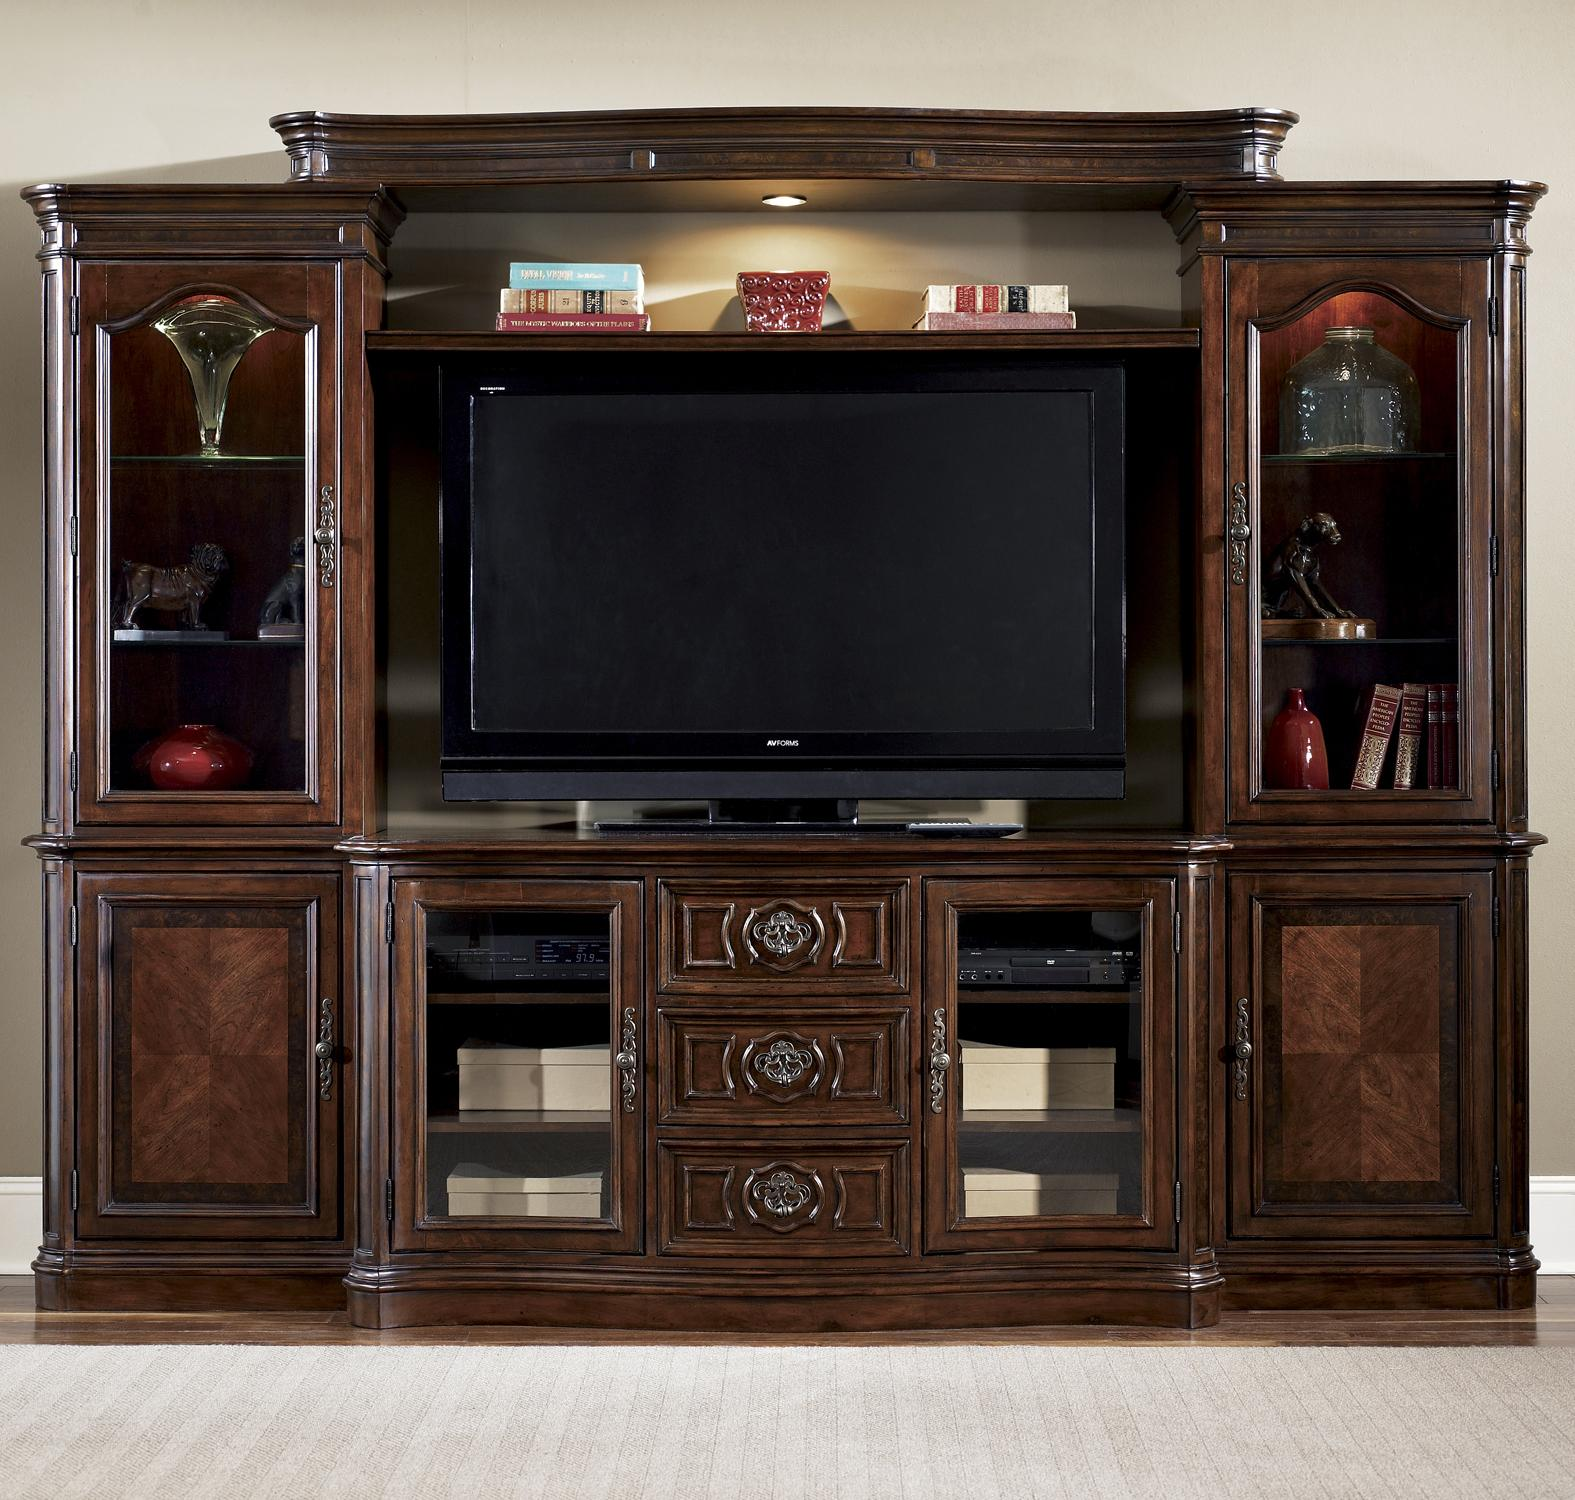 st media browse center entertainment tampa all effect cupboard modern petersburg products cross furniture sligh console